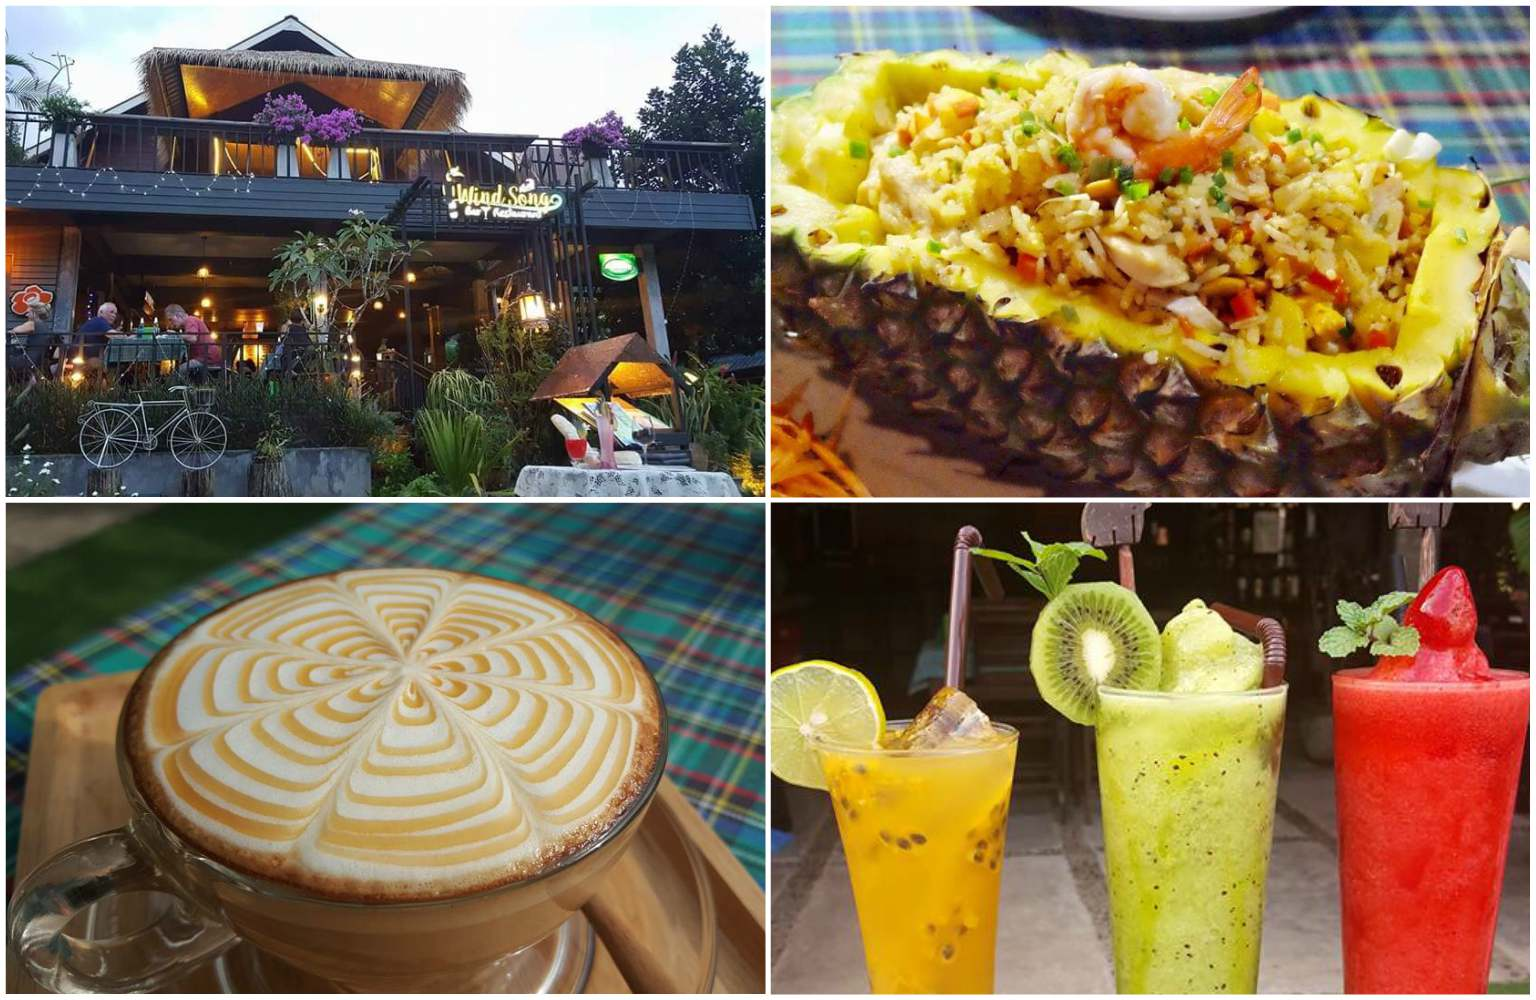 Collage of Wind Song Restaurant in Khao Sok, Thailand. The view of the restaurant, a nicely decorated cup of cappuccino, fried rice in a pineapple and three fruit shakes.